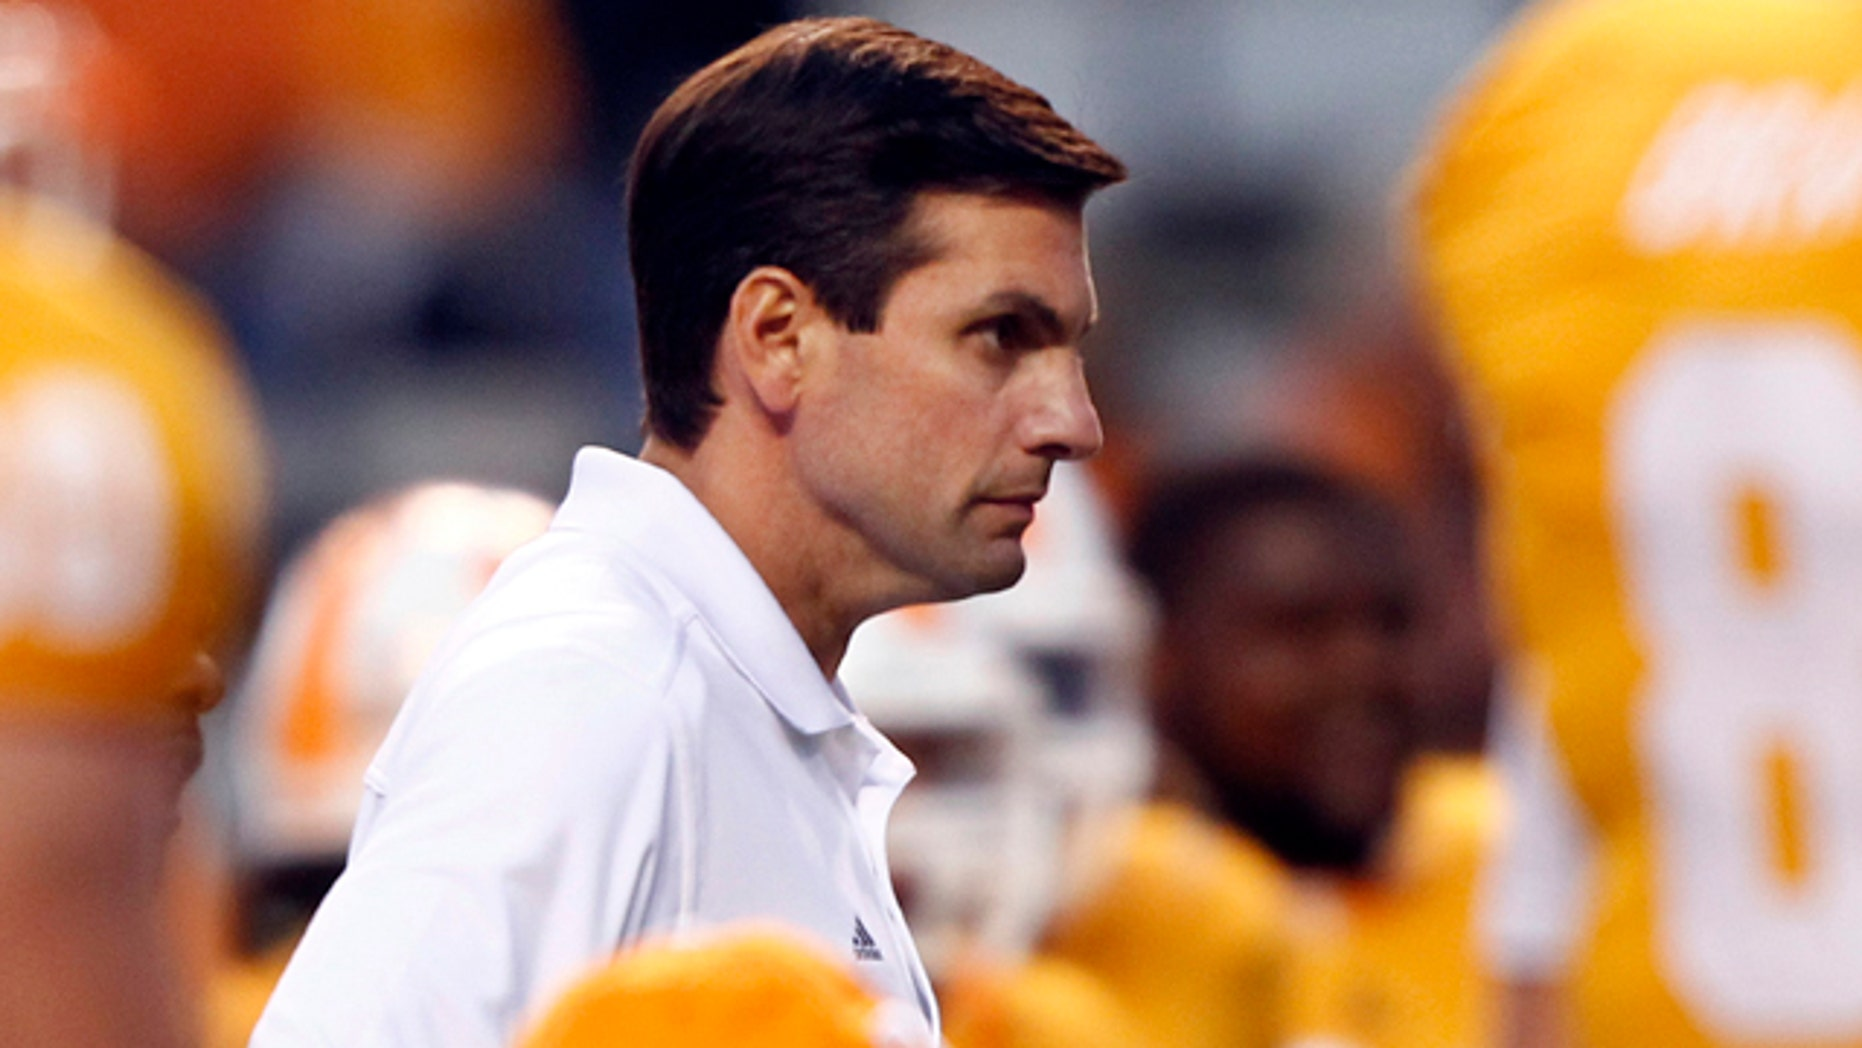 Oct. 23: Tennessee coach Derek Dooley looks on as his team warms up before an NCAA college football game against Alabama at Neyland Stadium in Knoxville, Tenn.